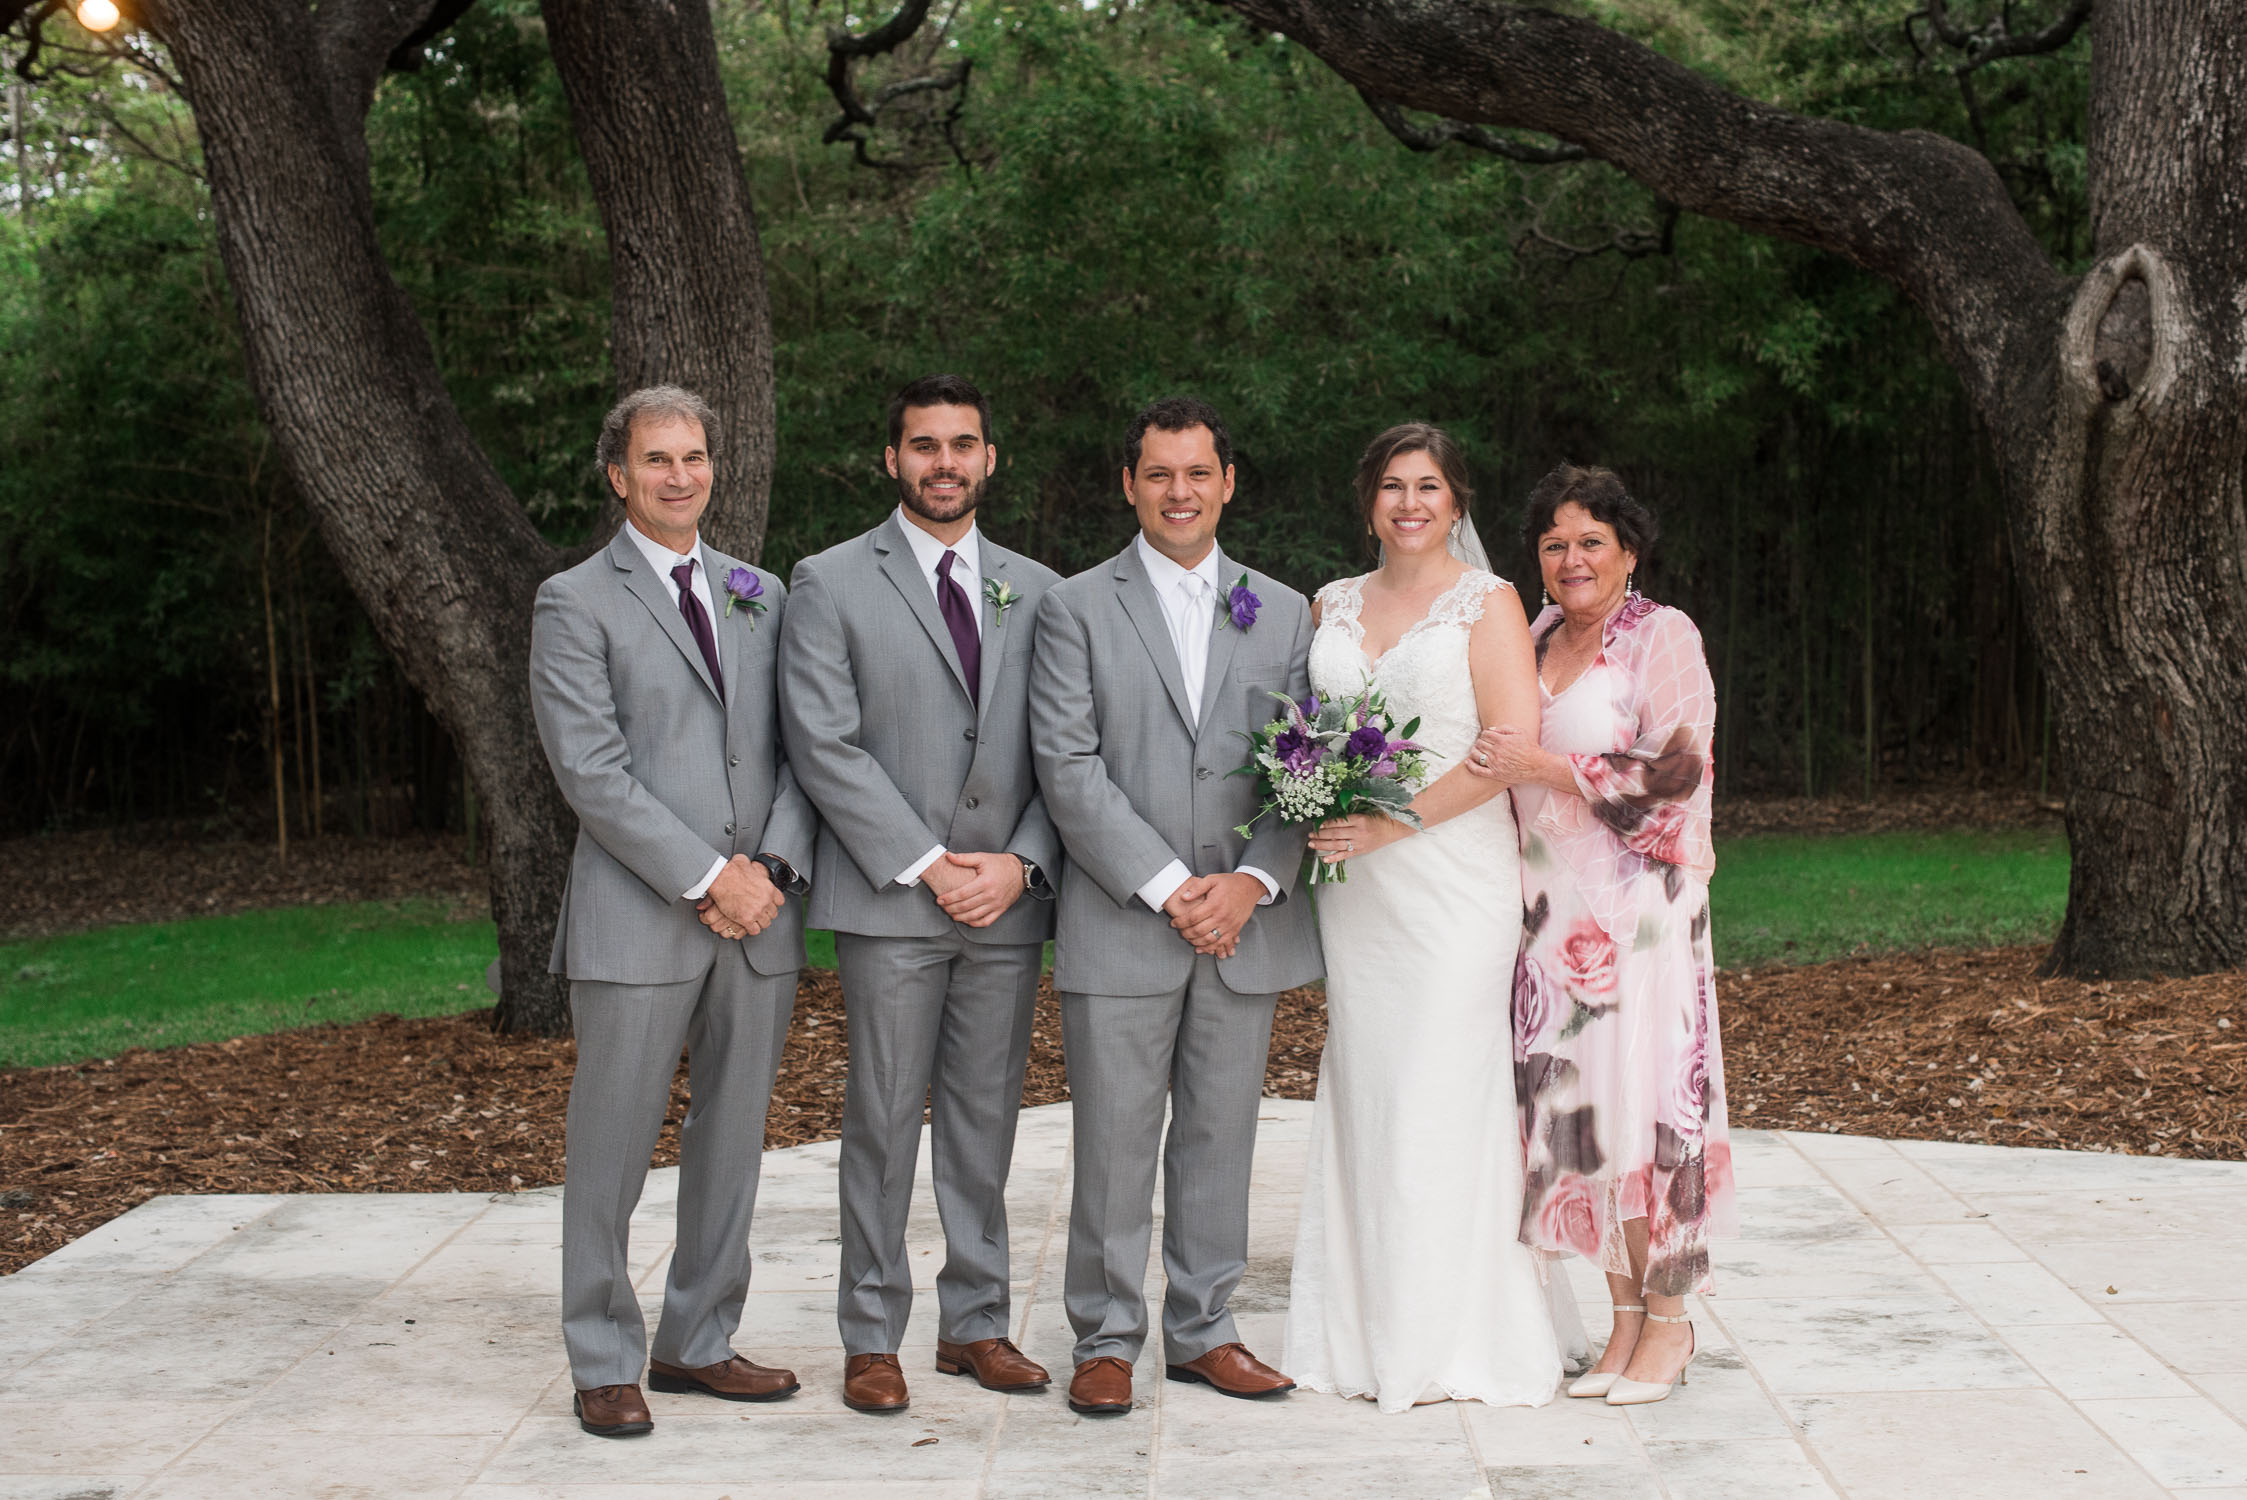 Alex and Austin Wedding Photography at Mercury Hall in Texas-101.jpg